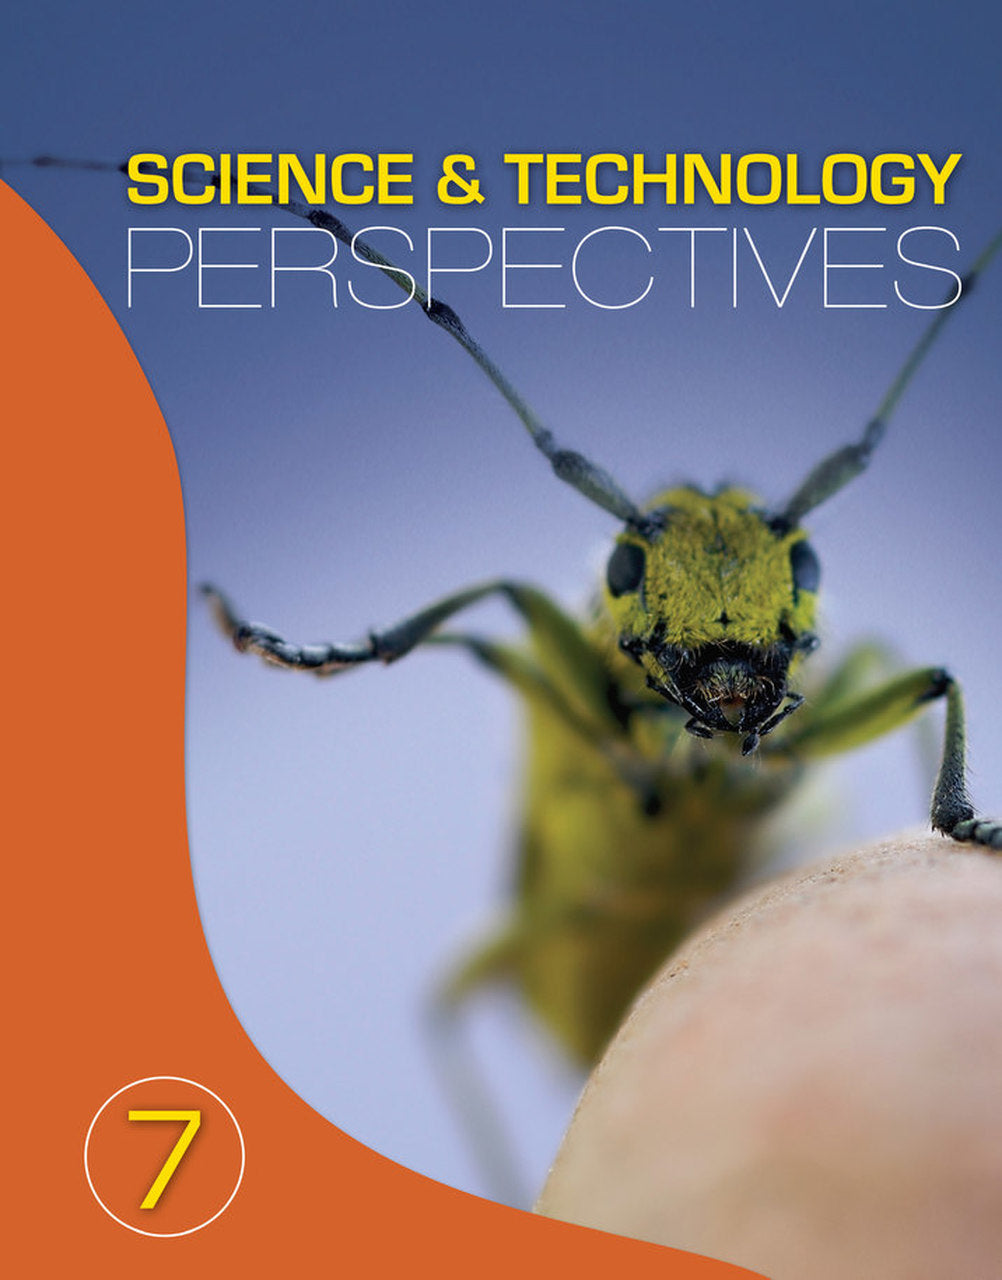 Science and Technology Perspectives 7 Student Book: Student Text & Online Student Text PDFs